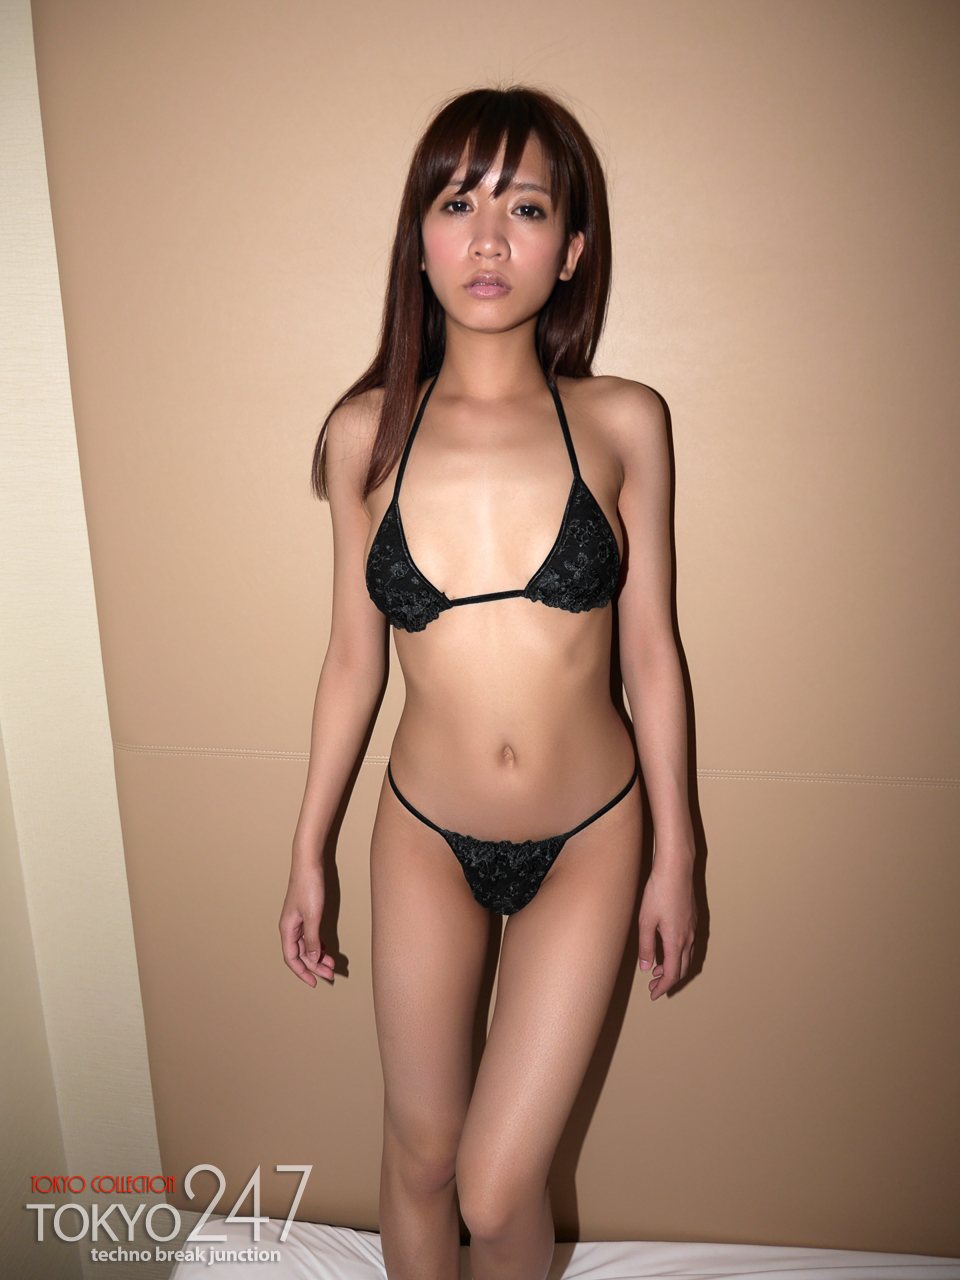 tc_601erena002-jpg [Maxi-247] Tokyo Collection No.264 tc_601 Erena [30P24MB]